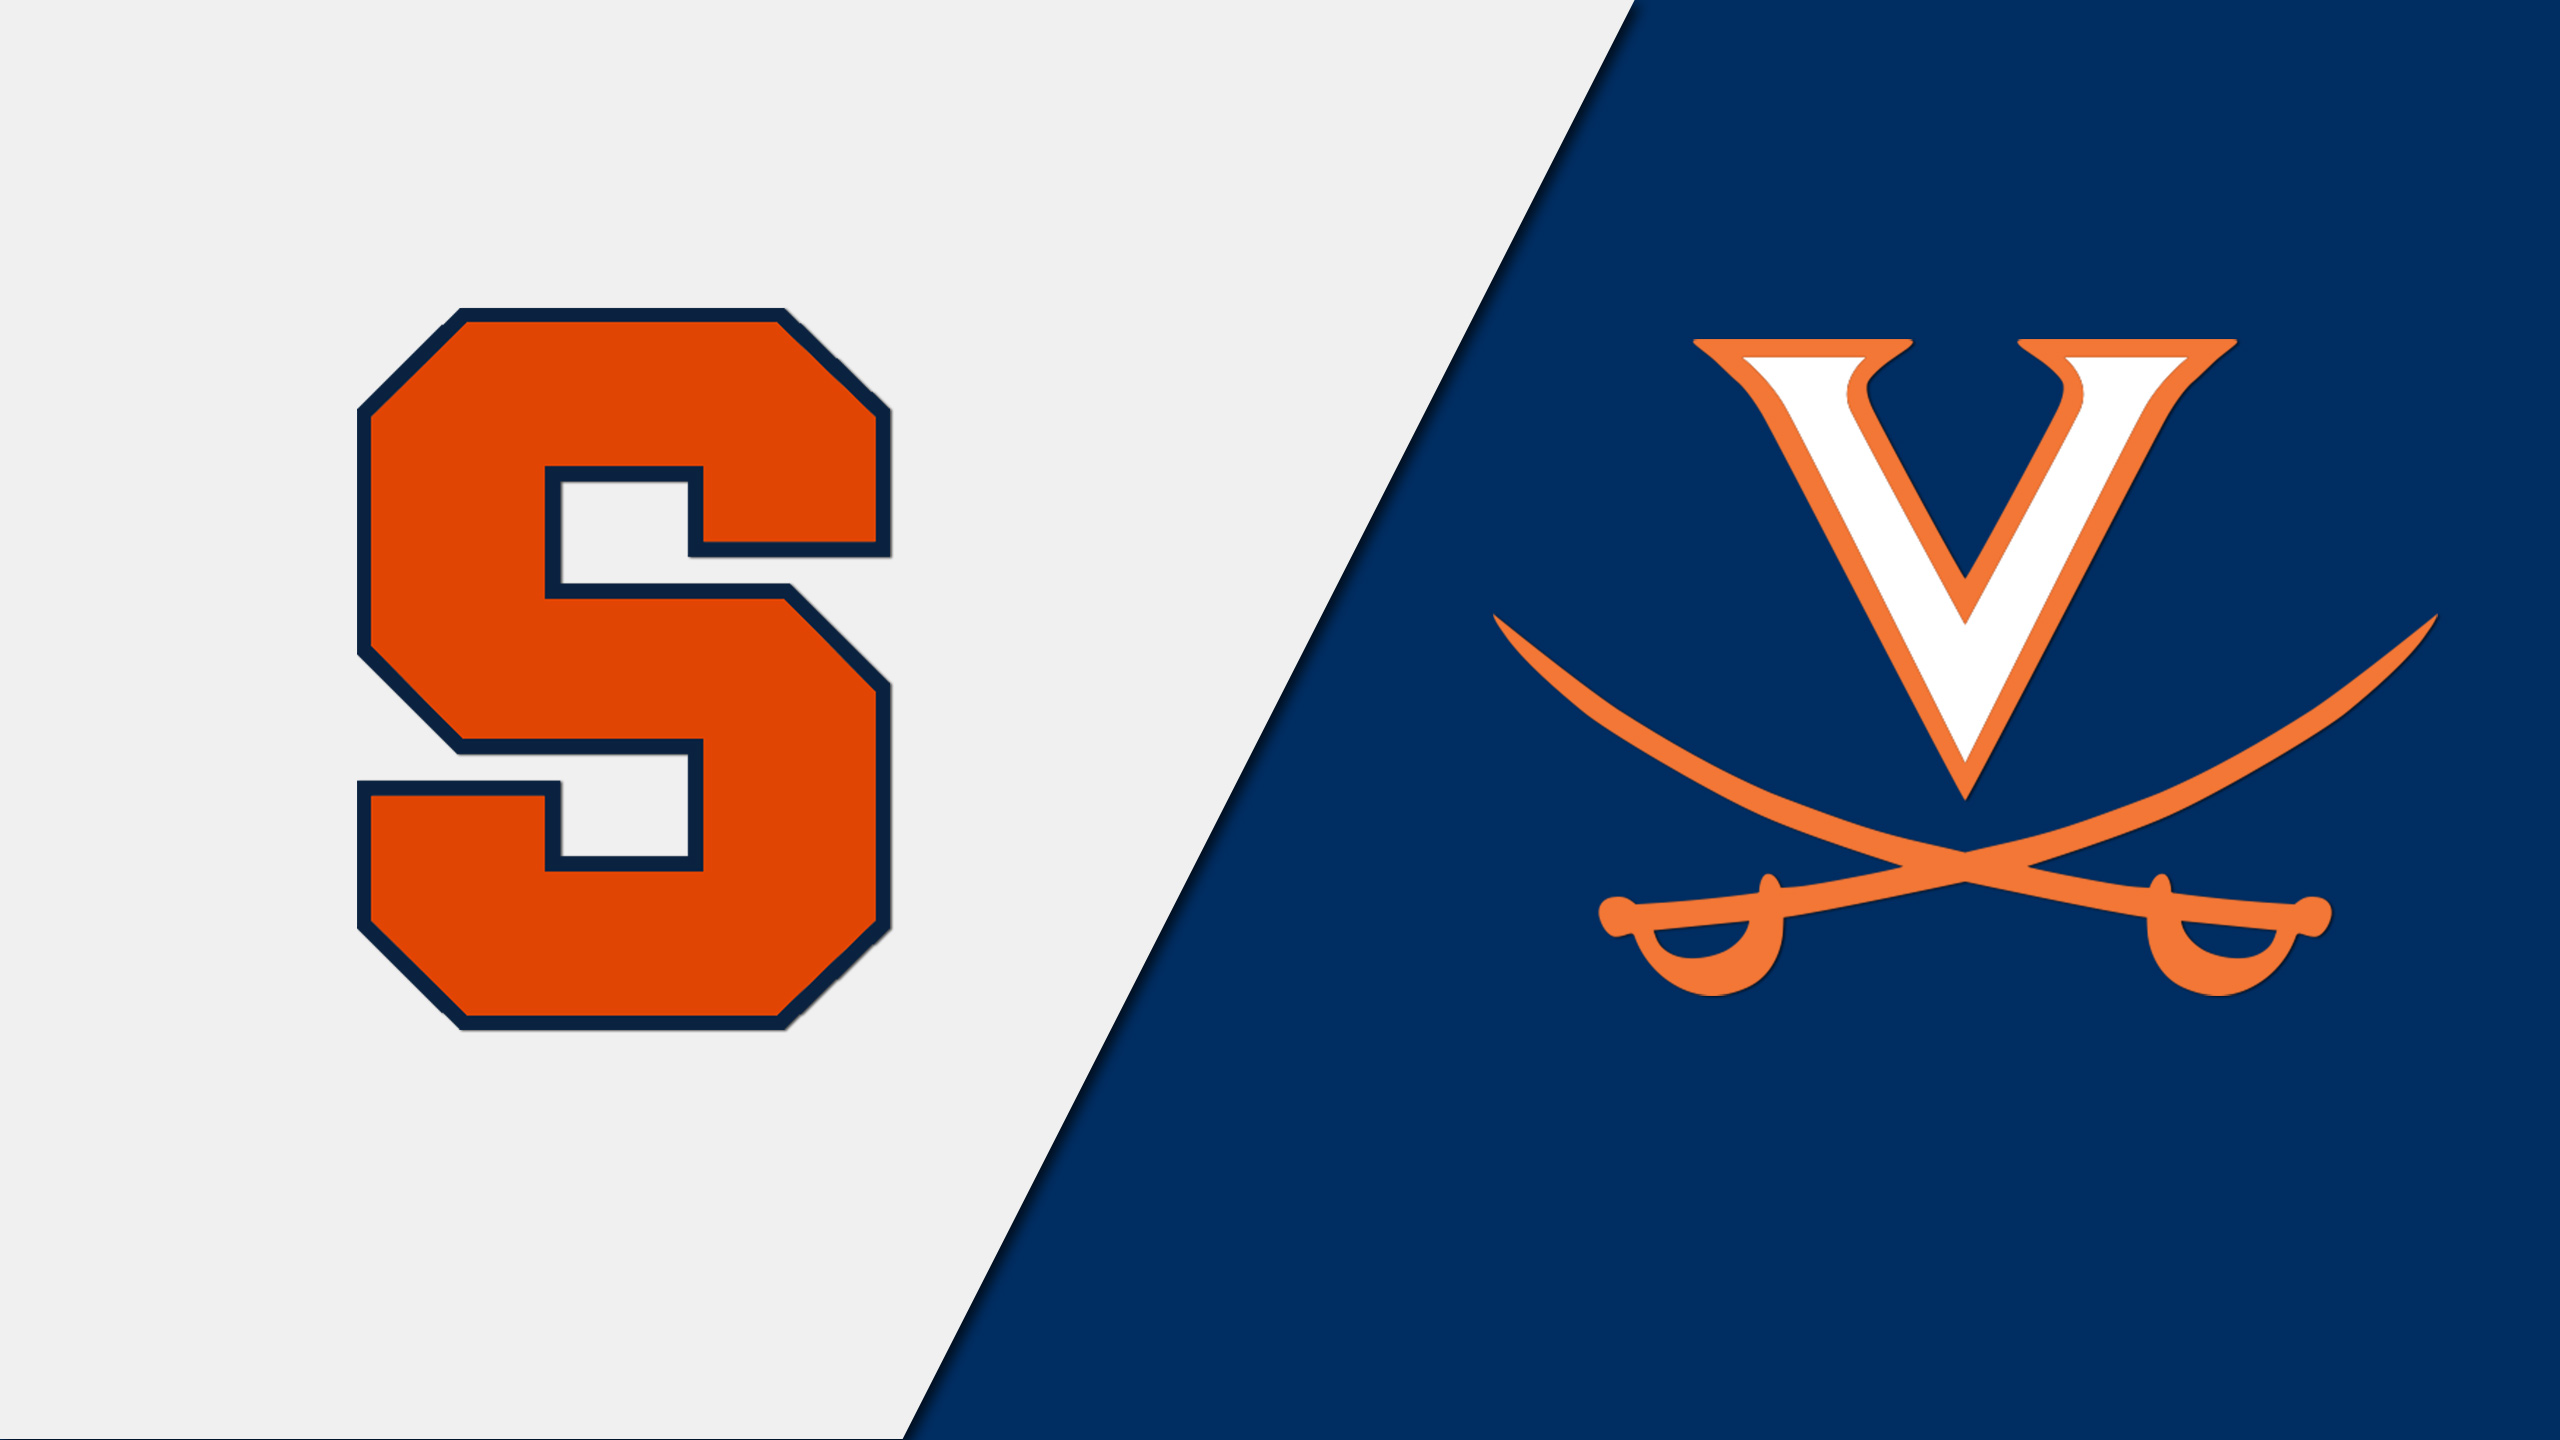 #7 Syracuse vs. #4 Virginia (Quarterfinal)